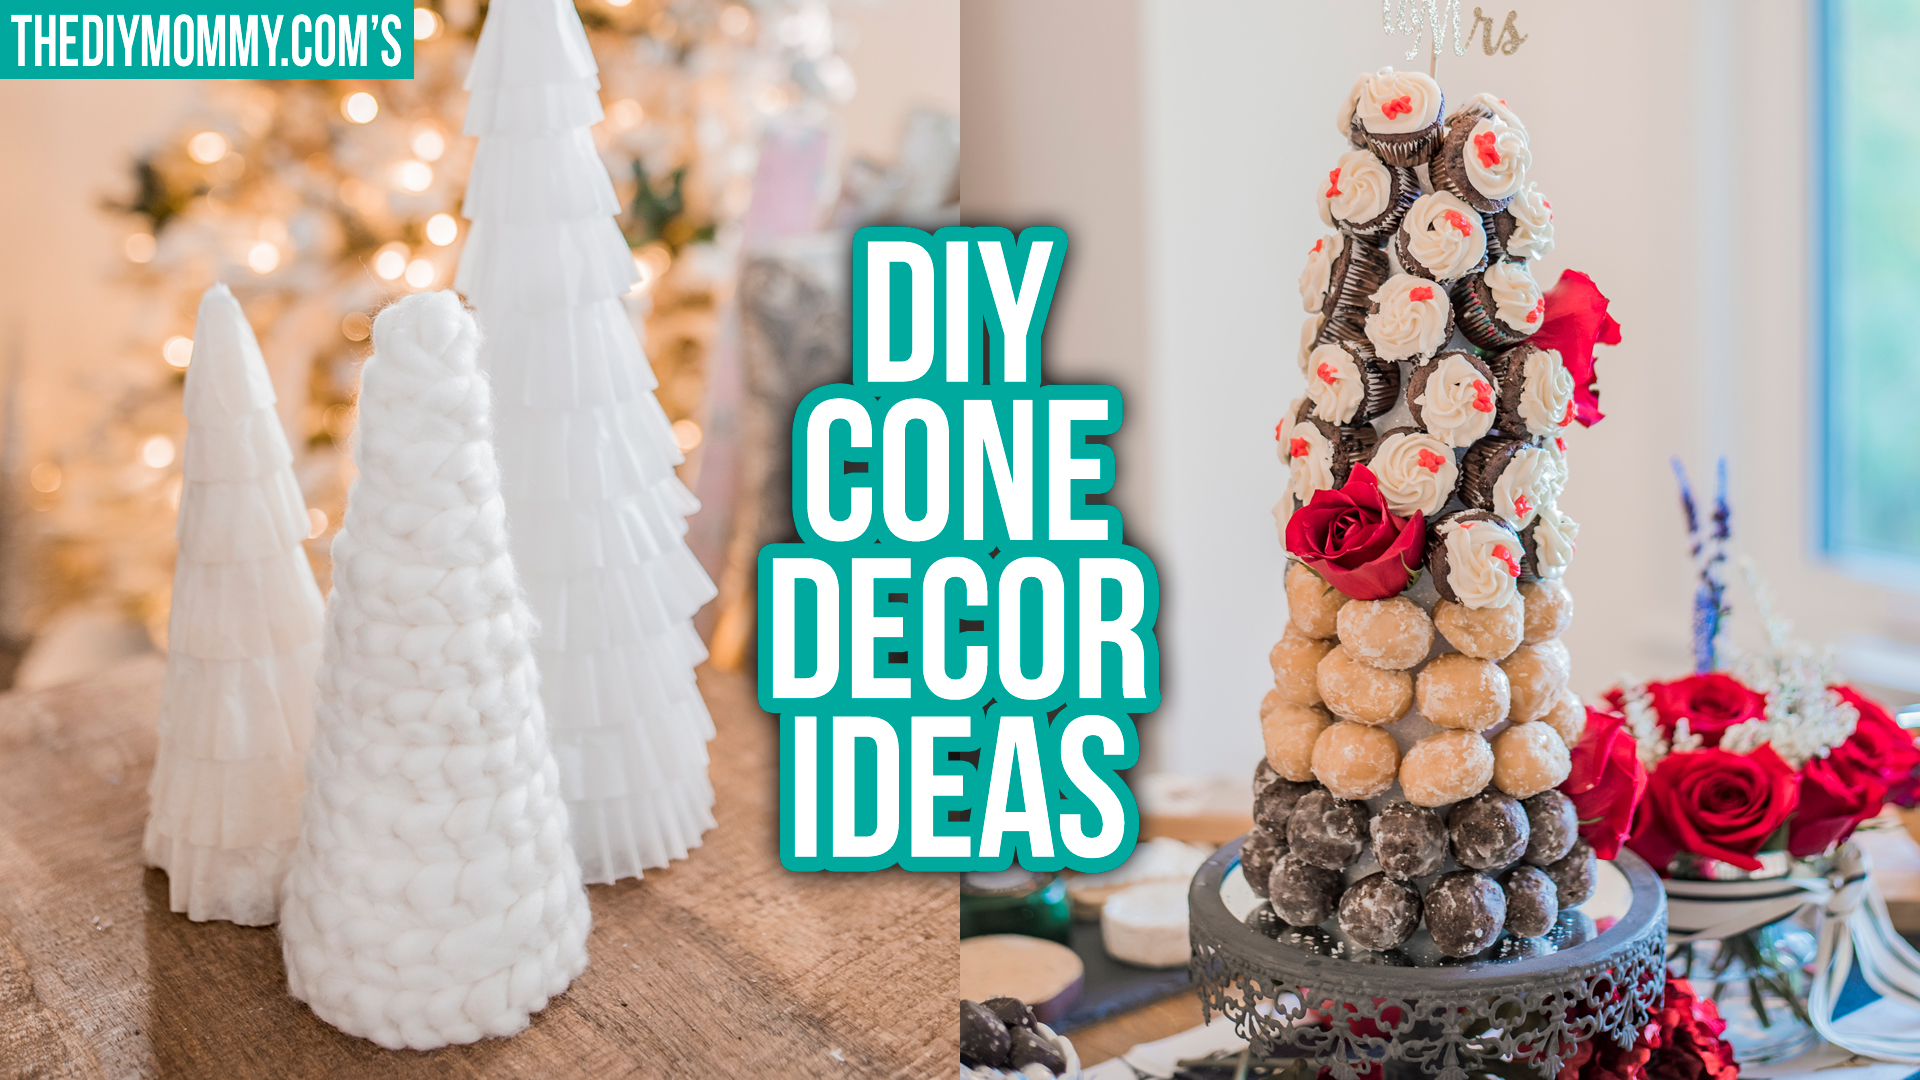 DIY Cone Decor Ideas for Christmas